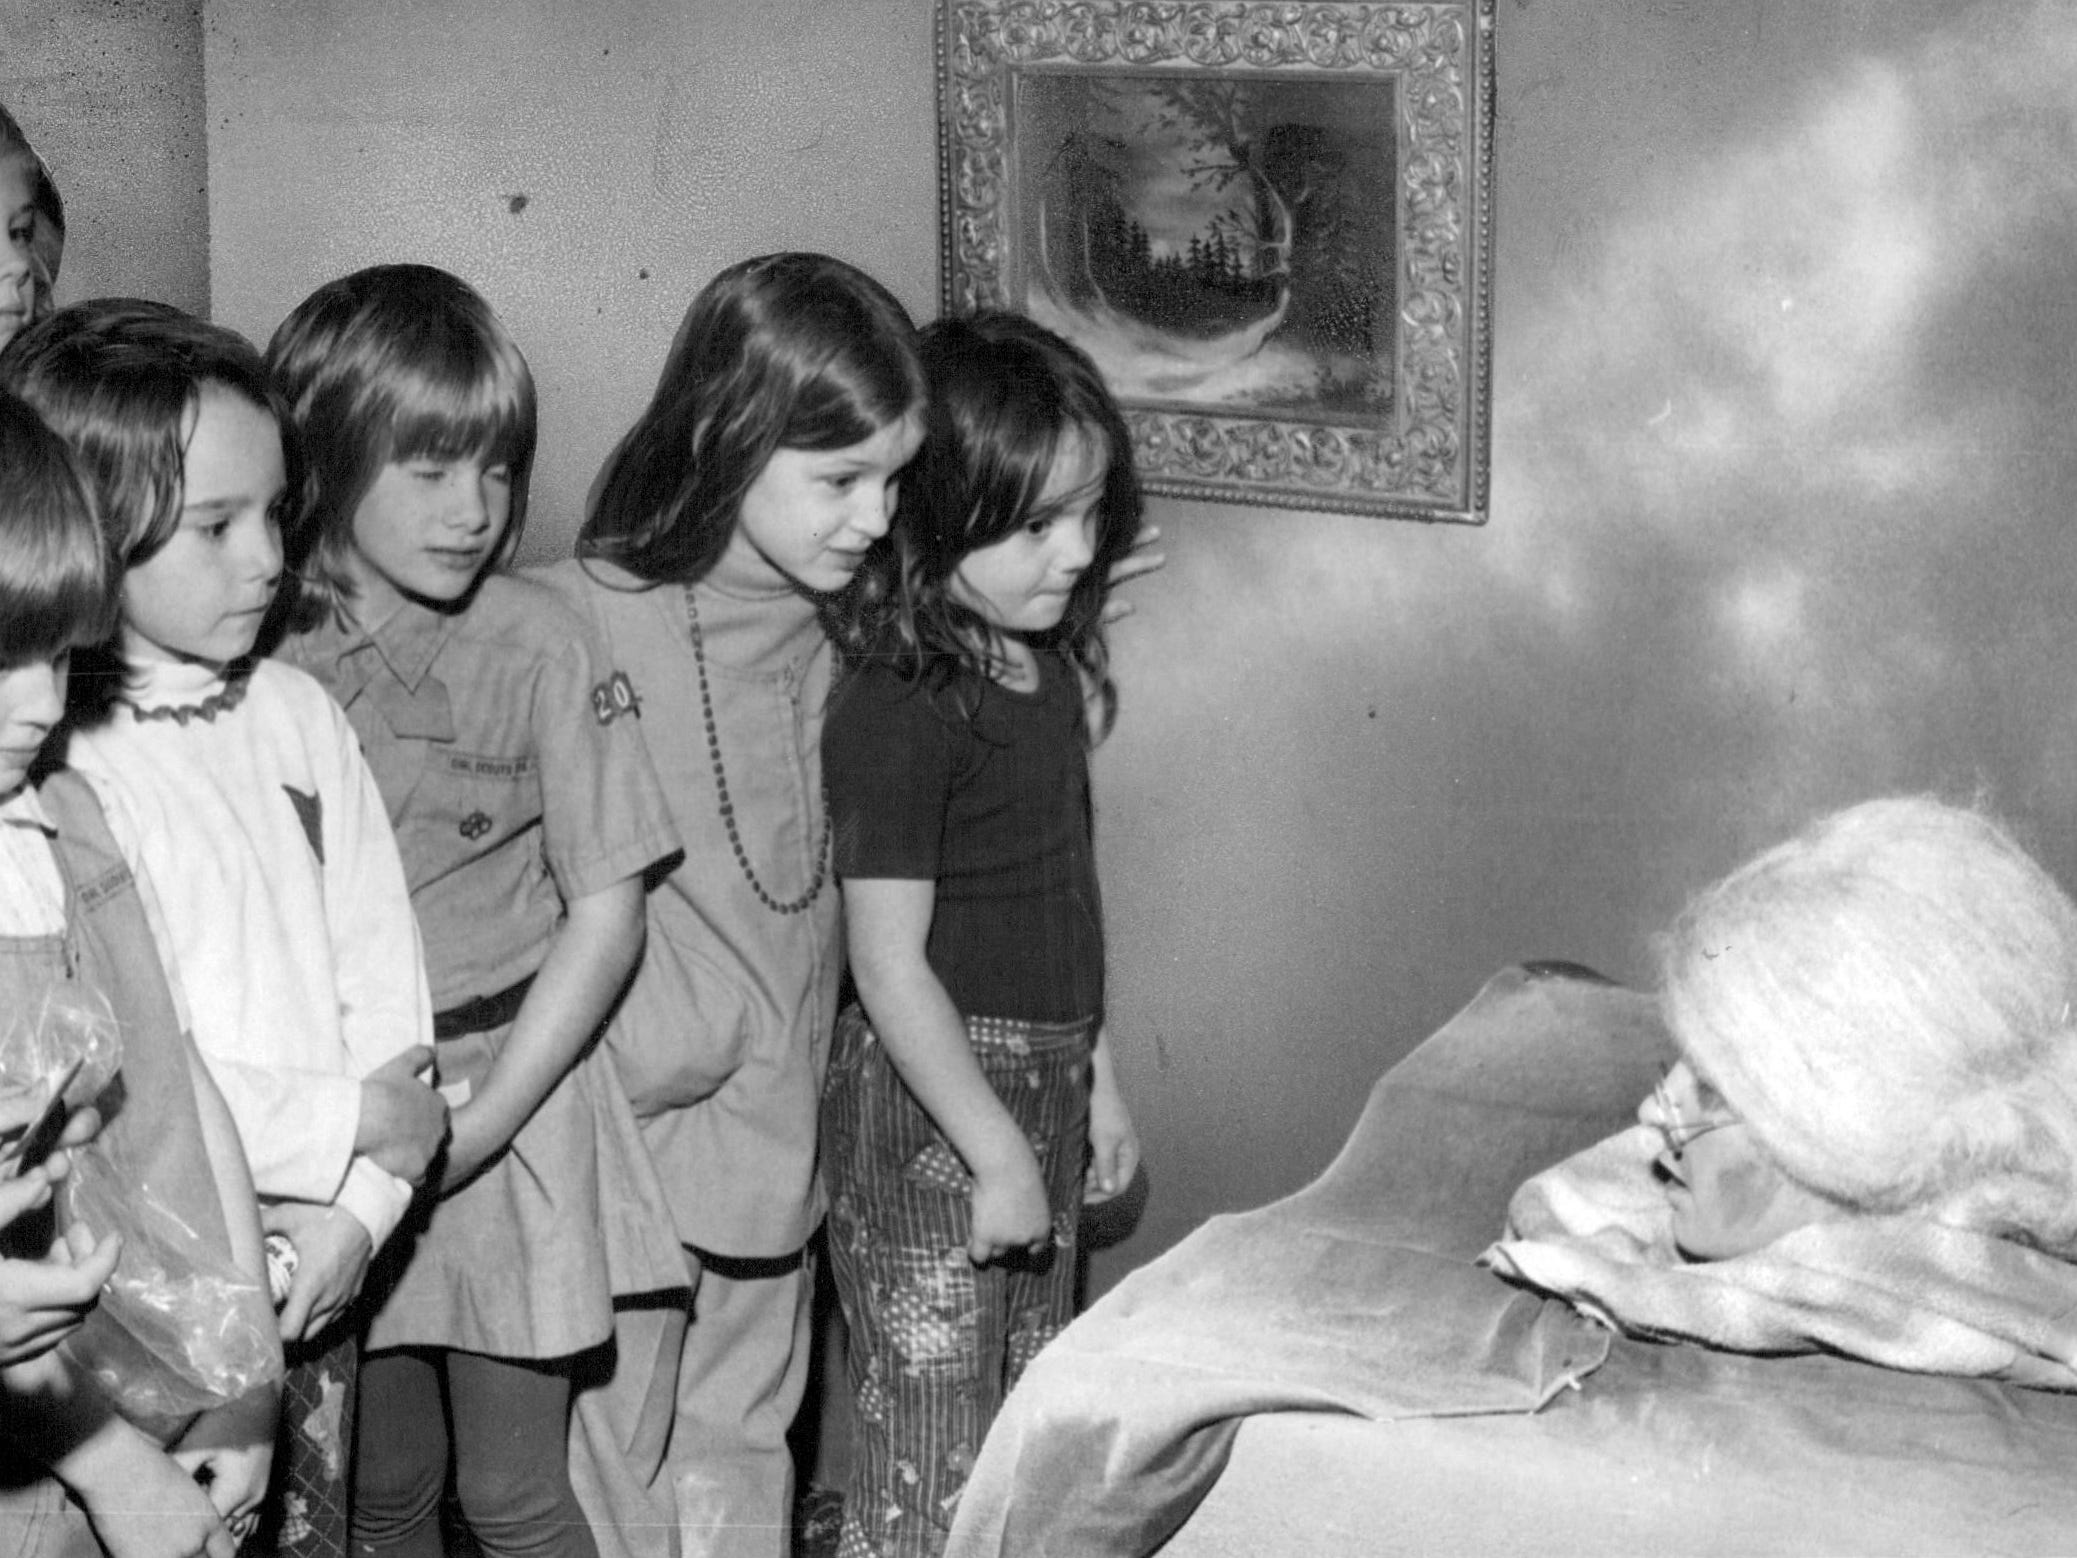 This photo from 1975 shows a group of youngsters going through a haunted house.